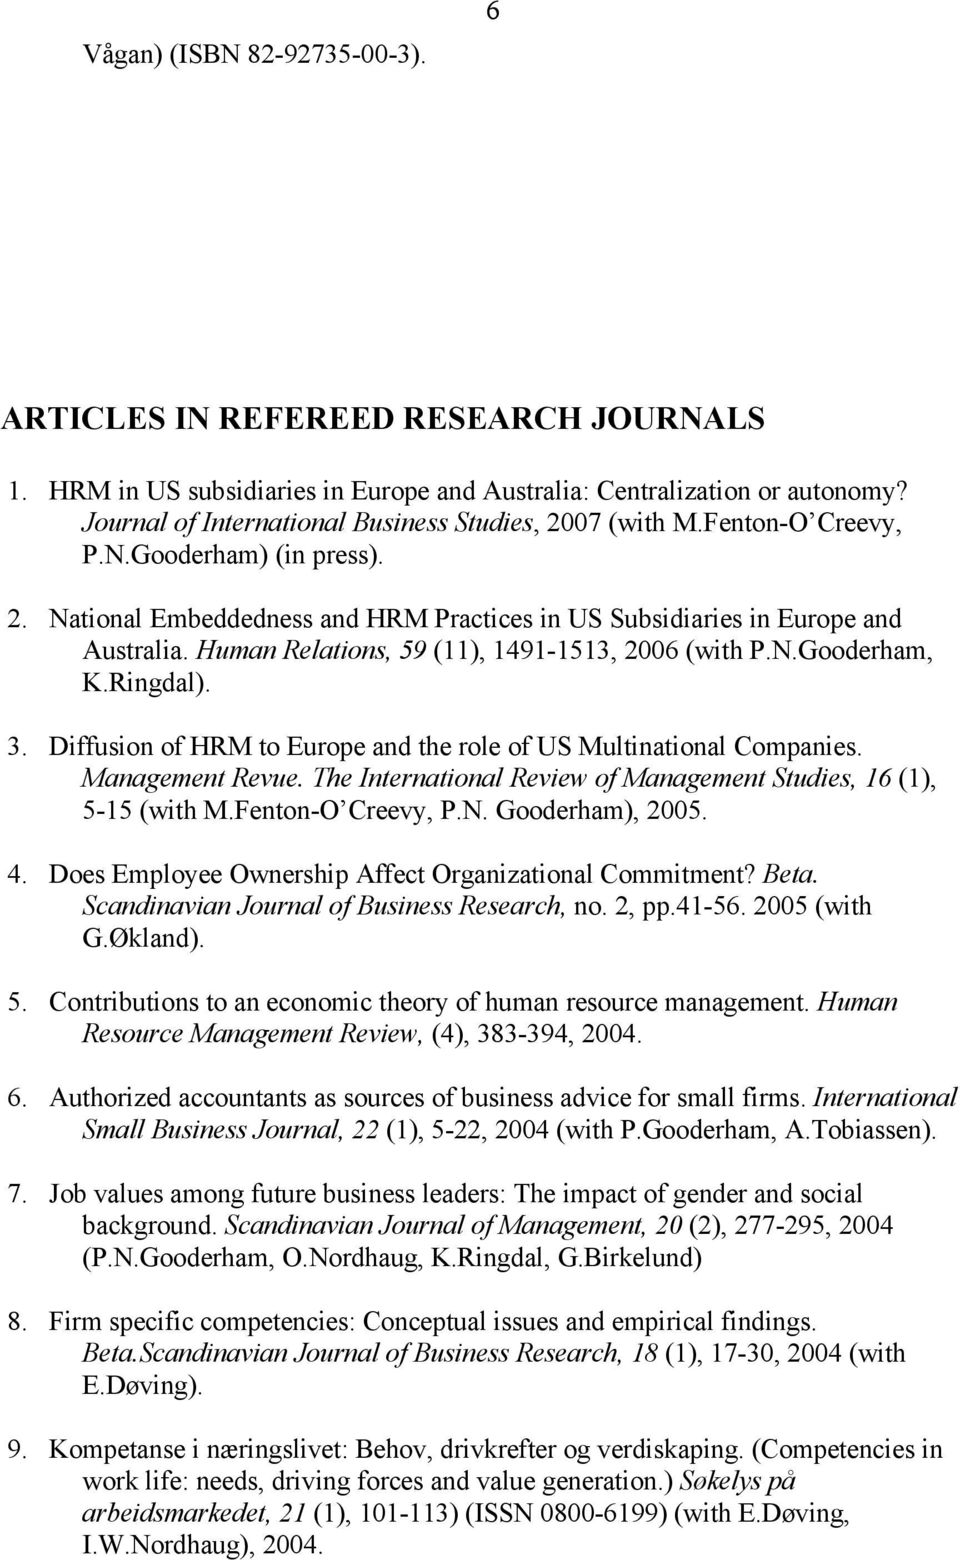 Human Relations, 59 (11), 1491-1513, 2006 (with P.N.Gooderham, K.Ringdal). 3. Diffusion of HRM to Europe and the role of US Multinational Companies. Management Revue.